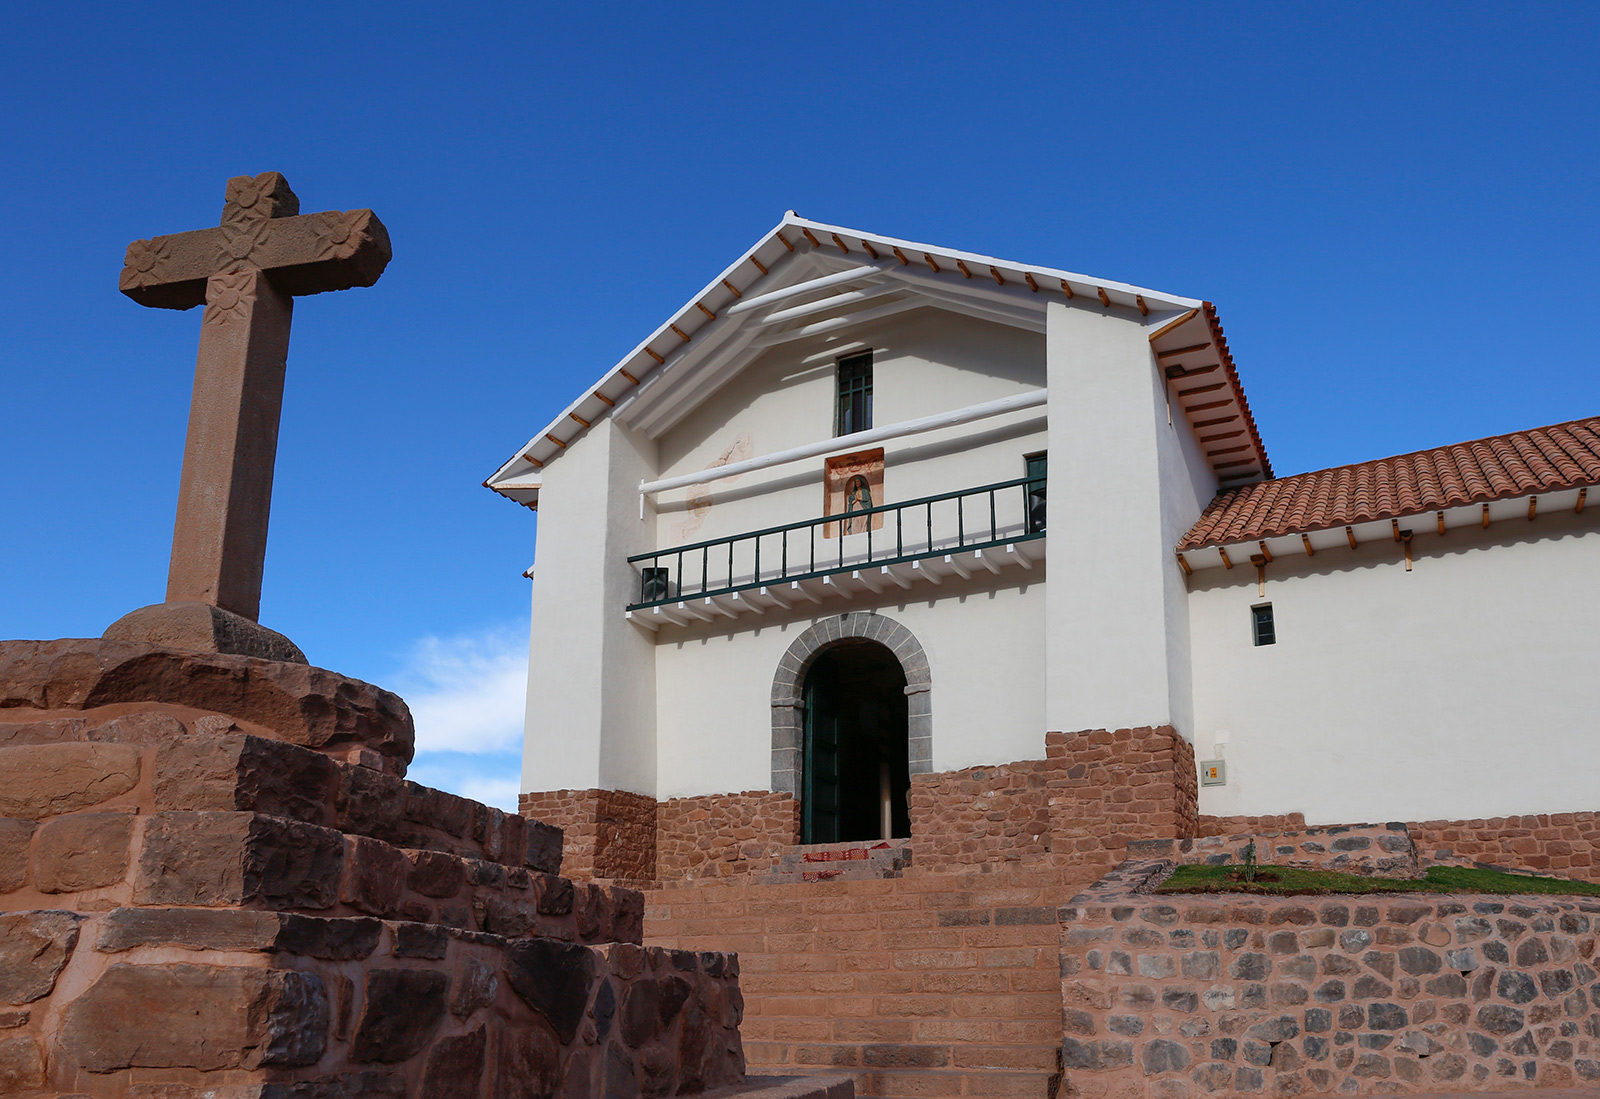 Small white church with a steepled two story entrance, and a terra cotta or sandstone cross out front